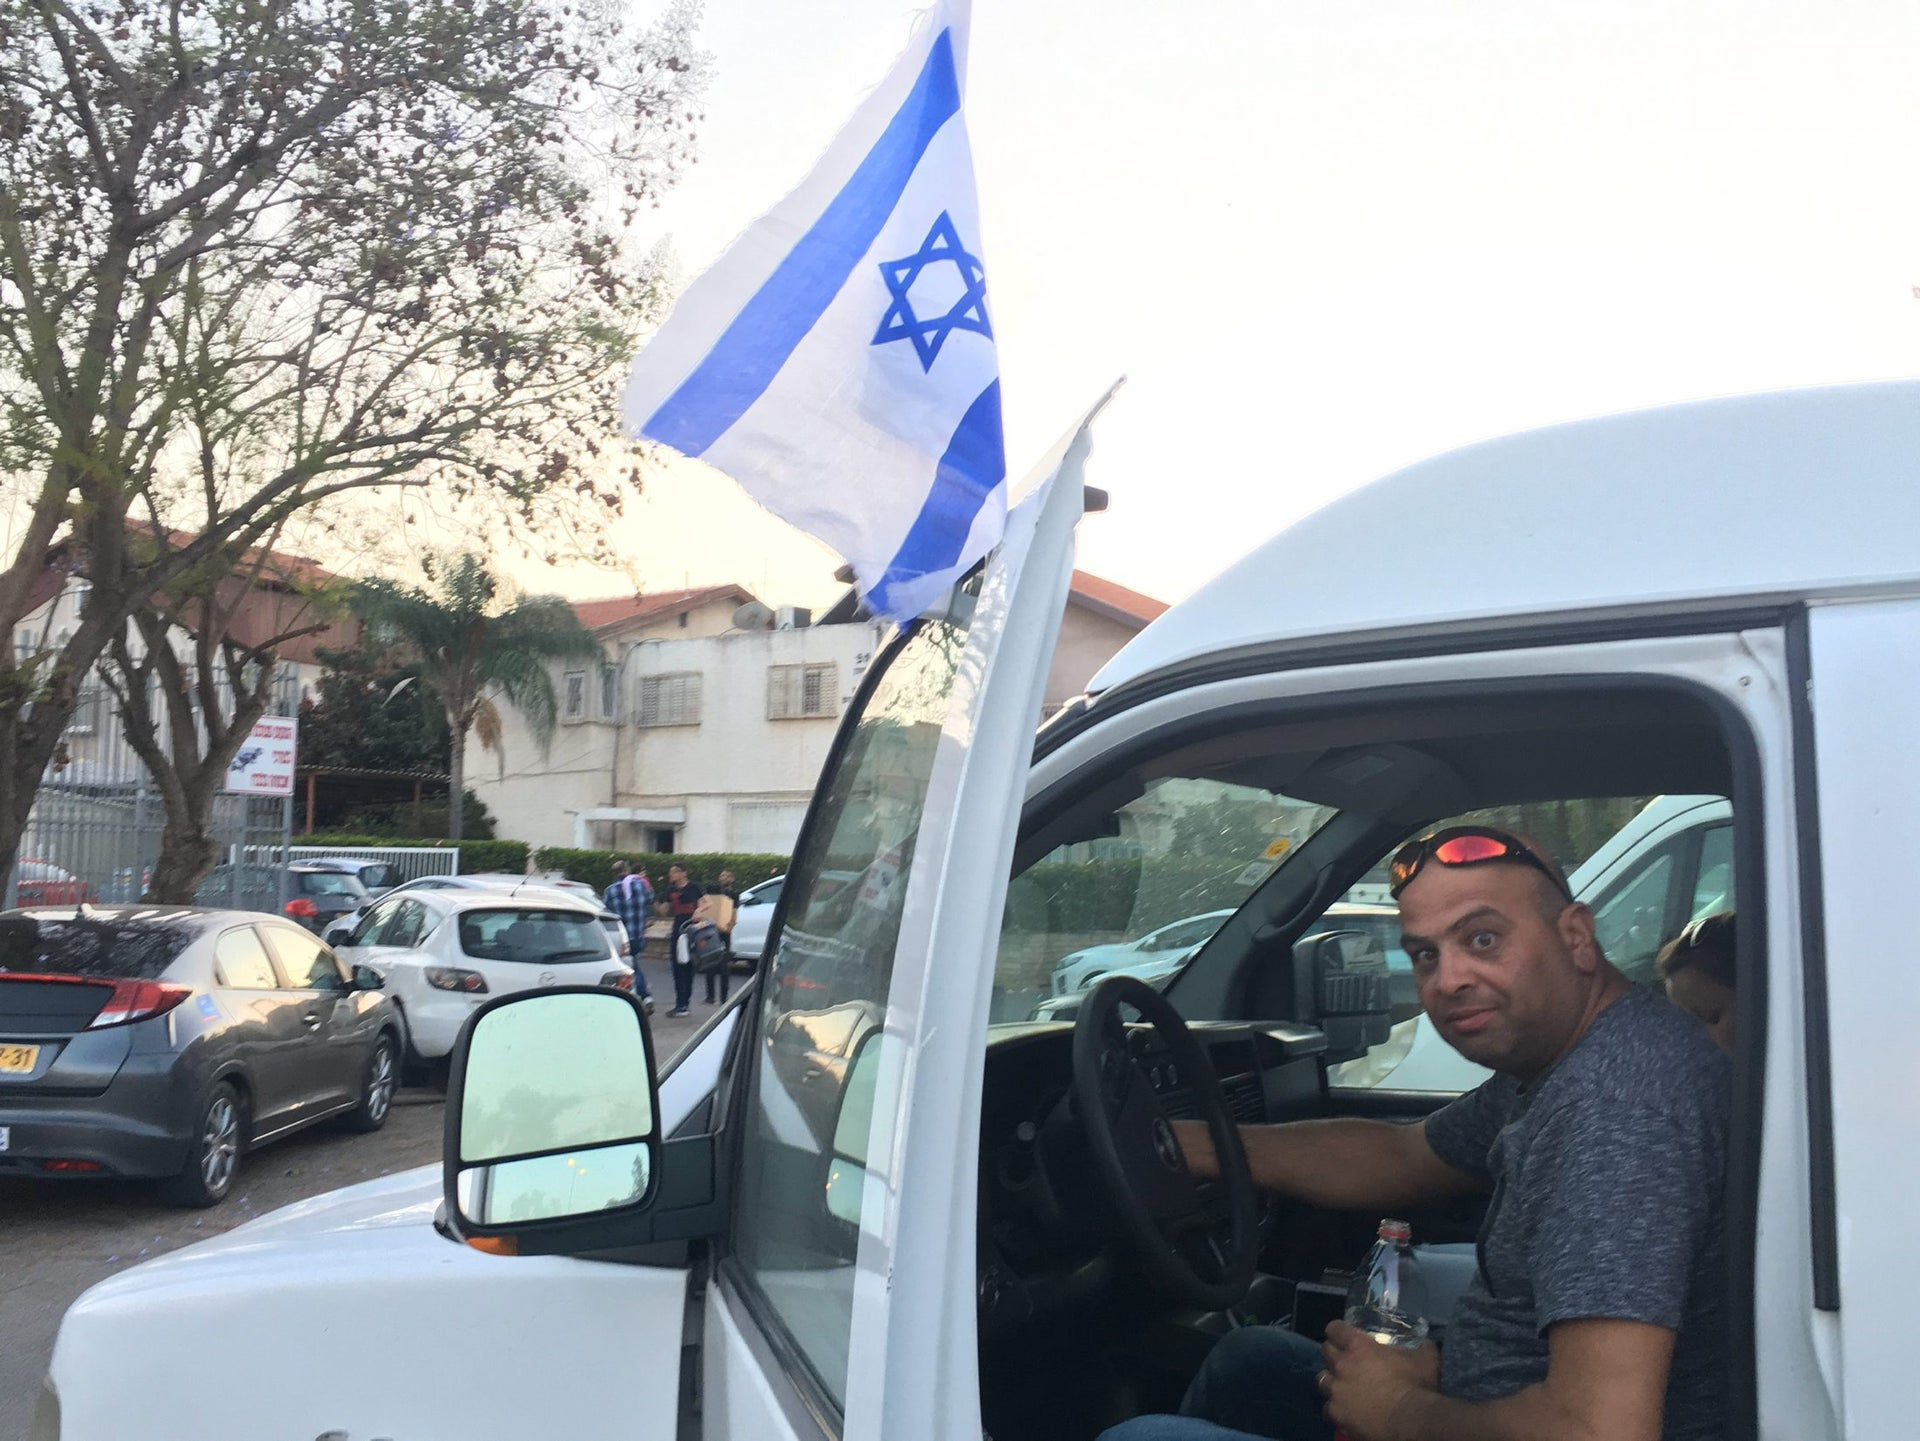 FLAGBEARER: Jacov getting ready to leave Holon for the other Samaritan community – in Kiryat Luza, near Nablus, in the West Bank.